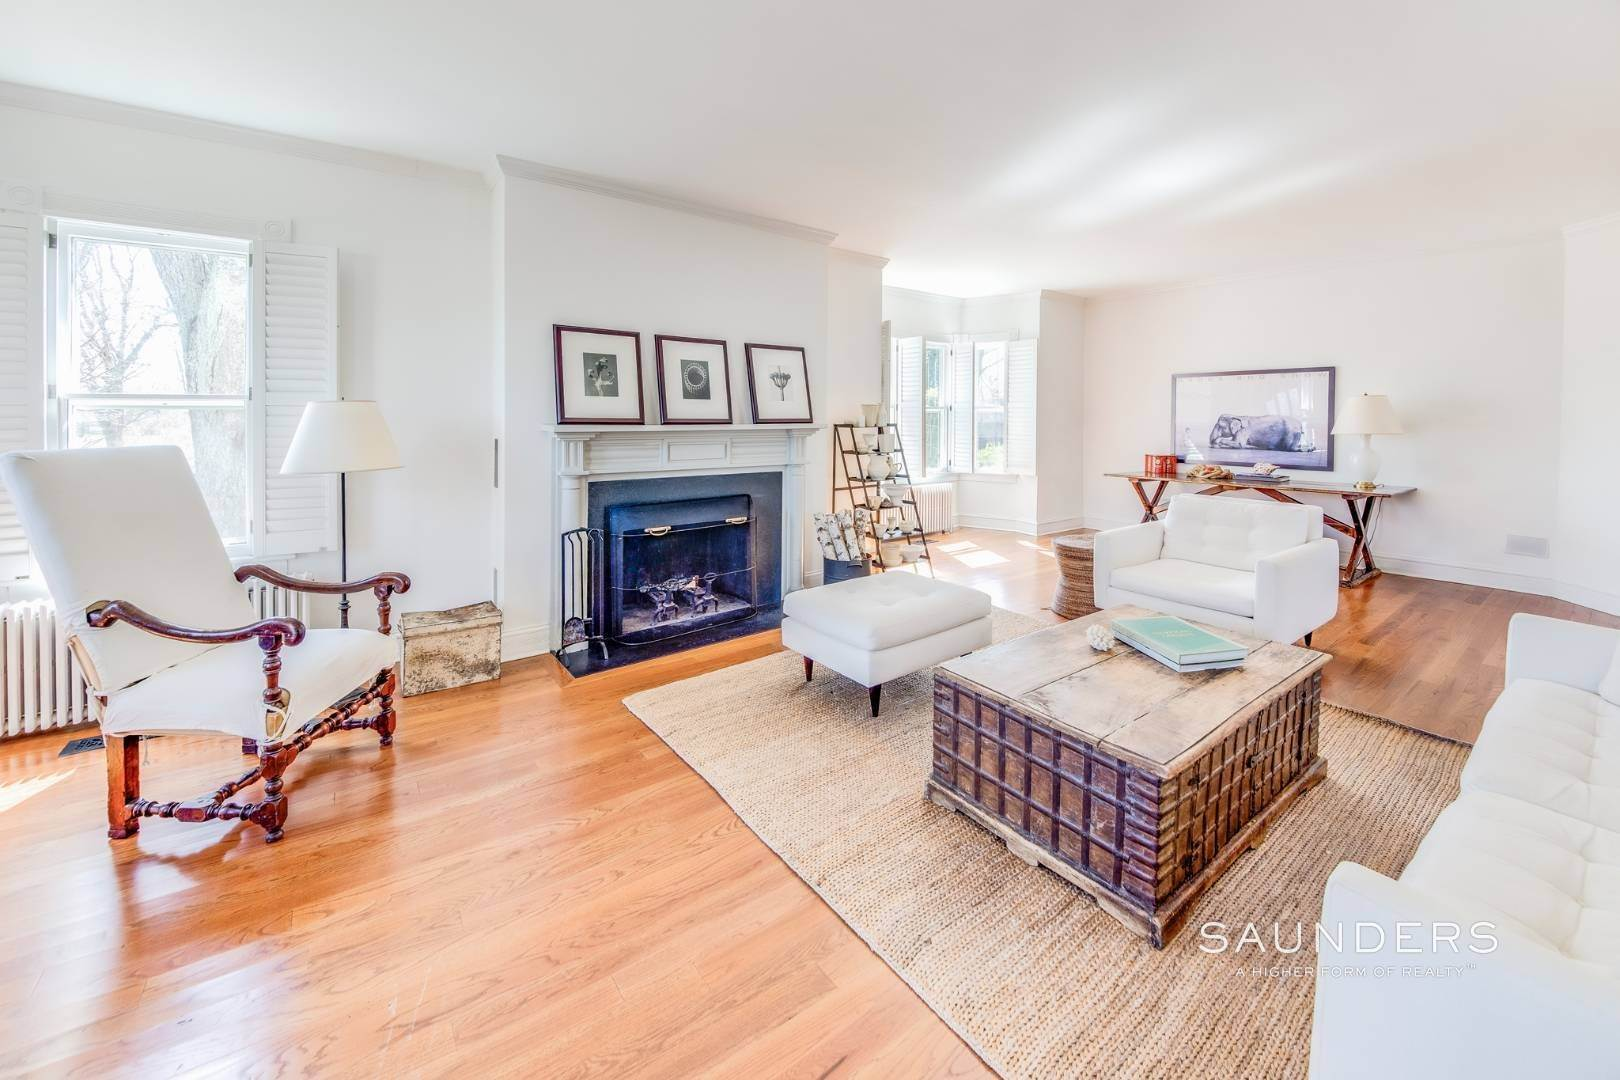 2. Single Family Homes for Sale at Historic Sag Harbor Charm On Rare Half Acre 27 Columbia Street, Sag Harbor, Southampton Town, NY 11963